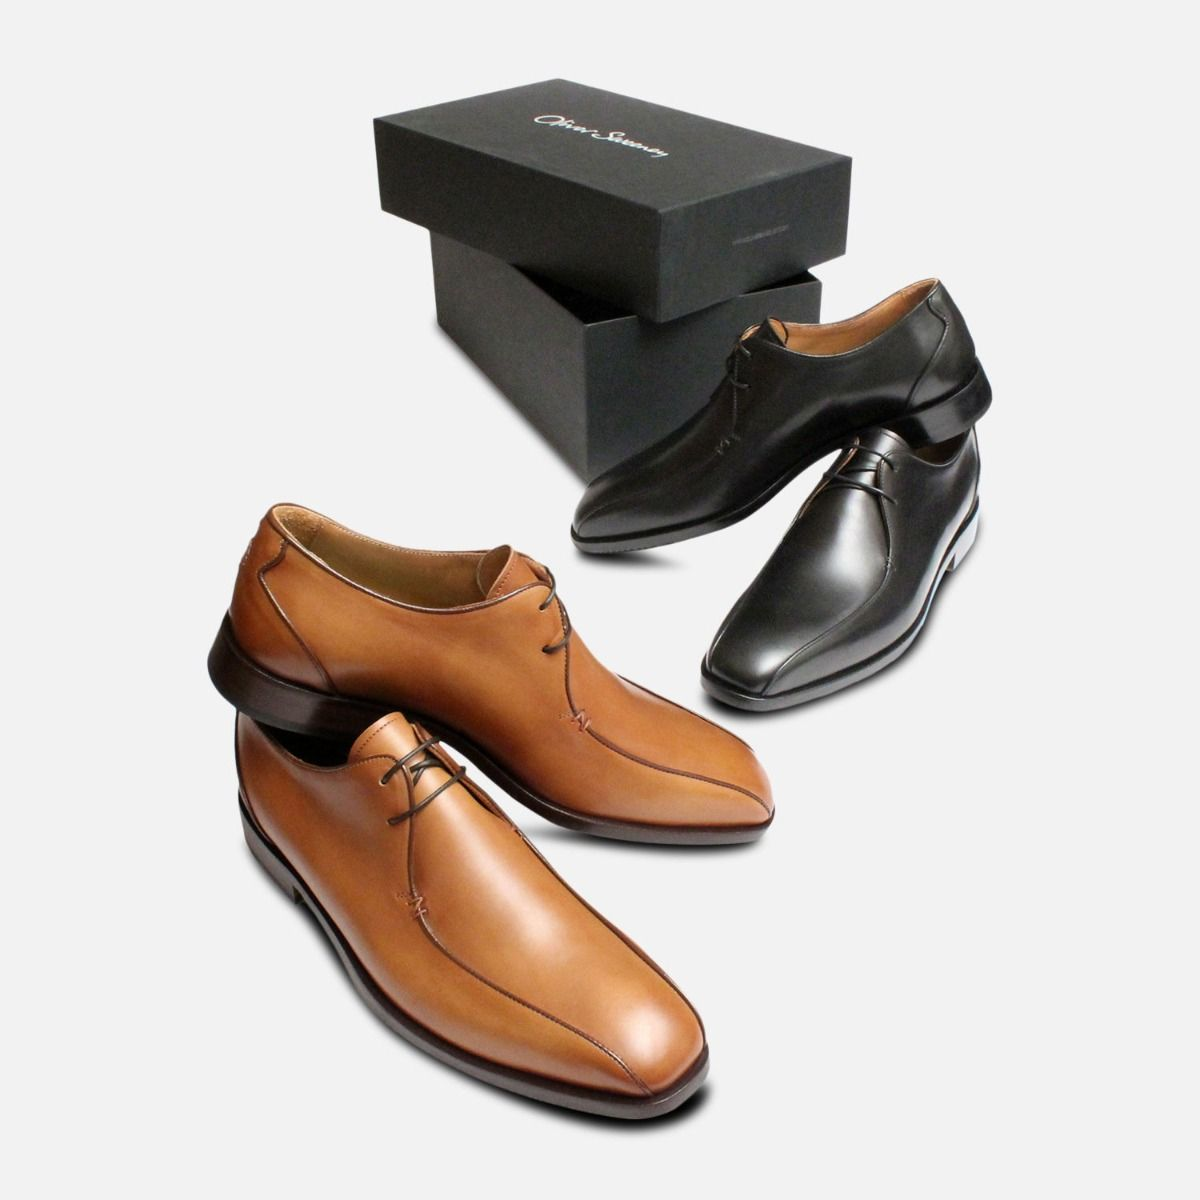 Premium Italian Shoes by Oliver Sweeney Sapri in Black